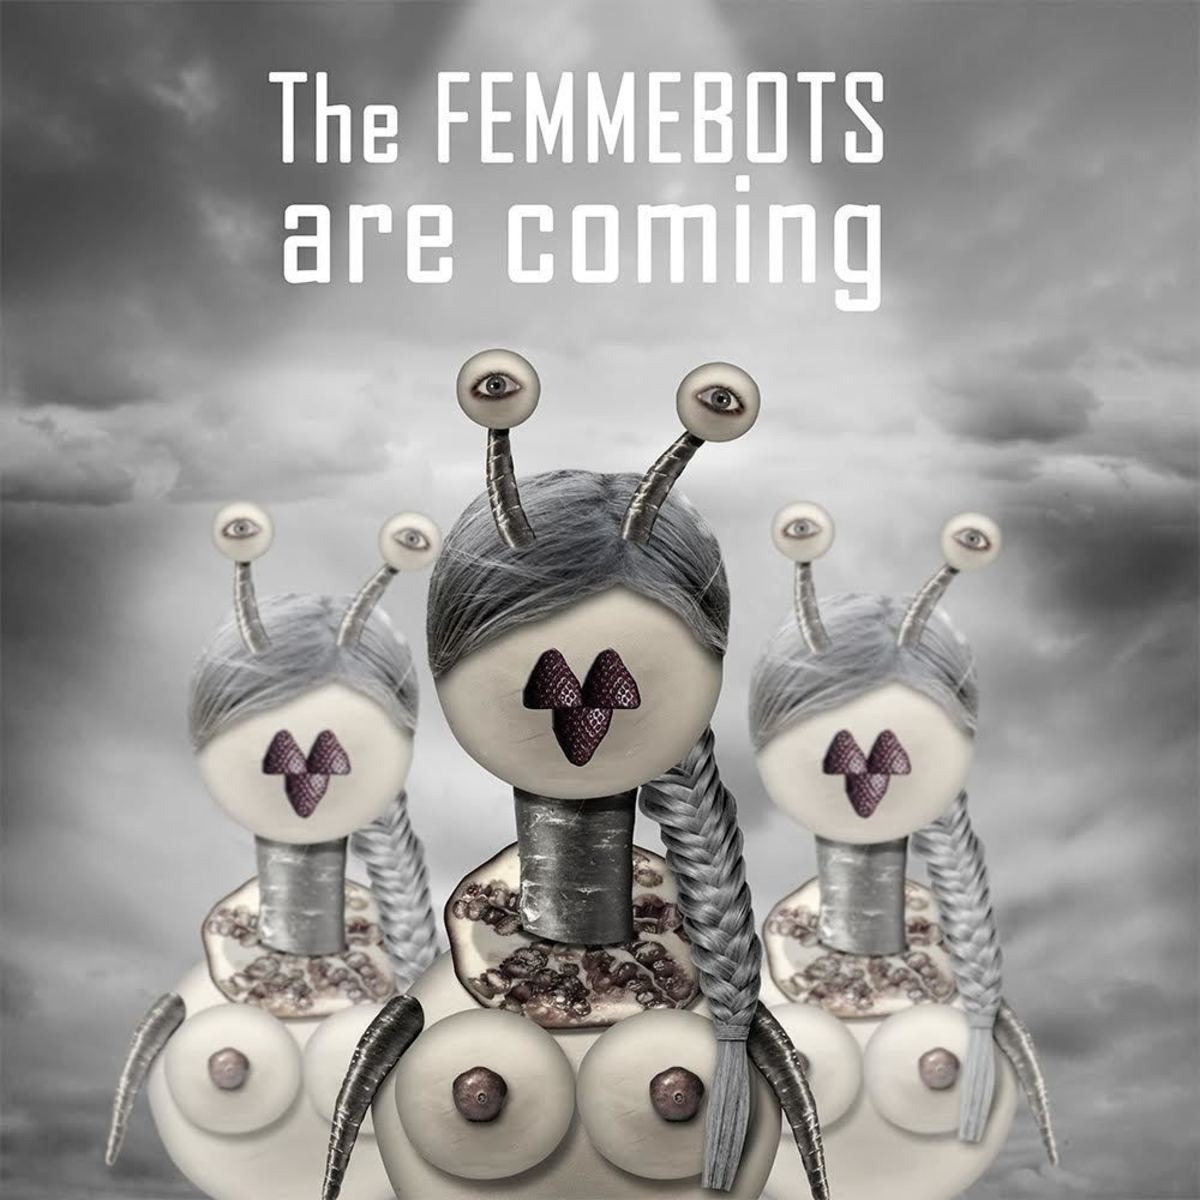 The Femmebots are coming (Framed)